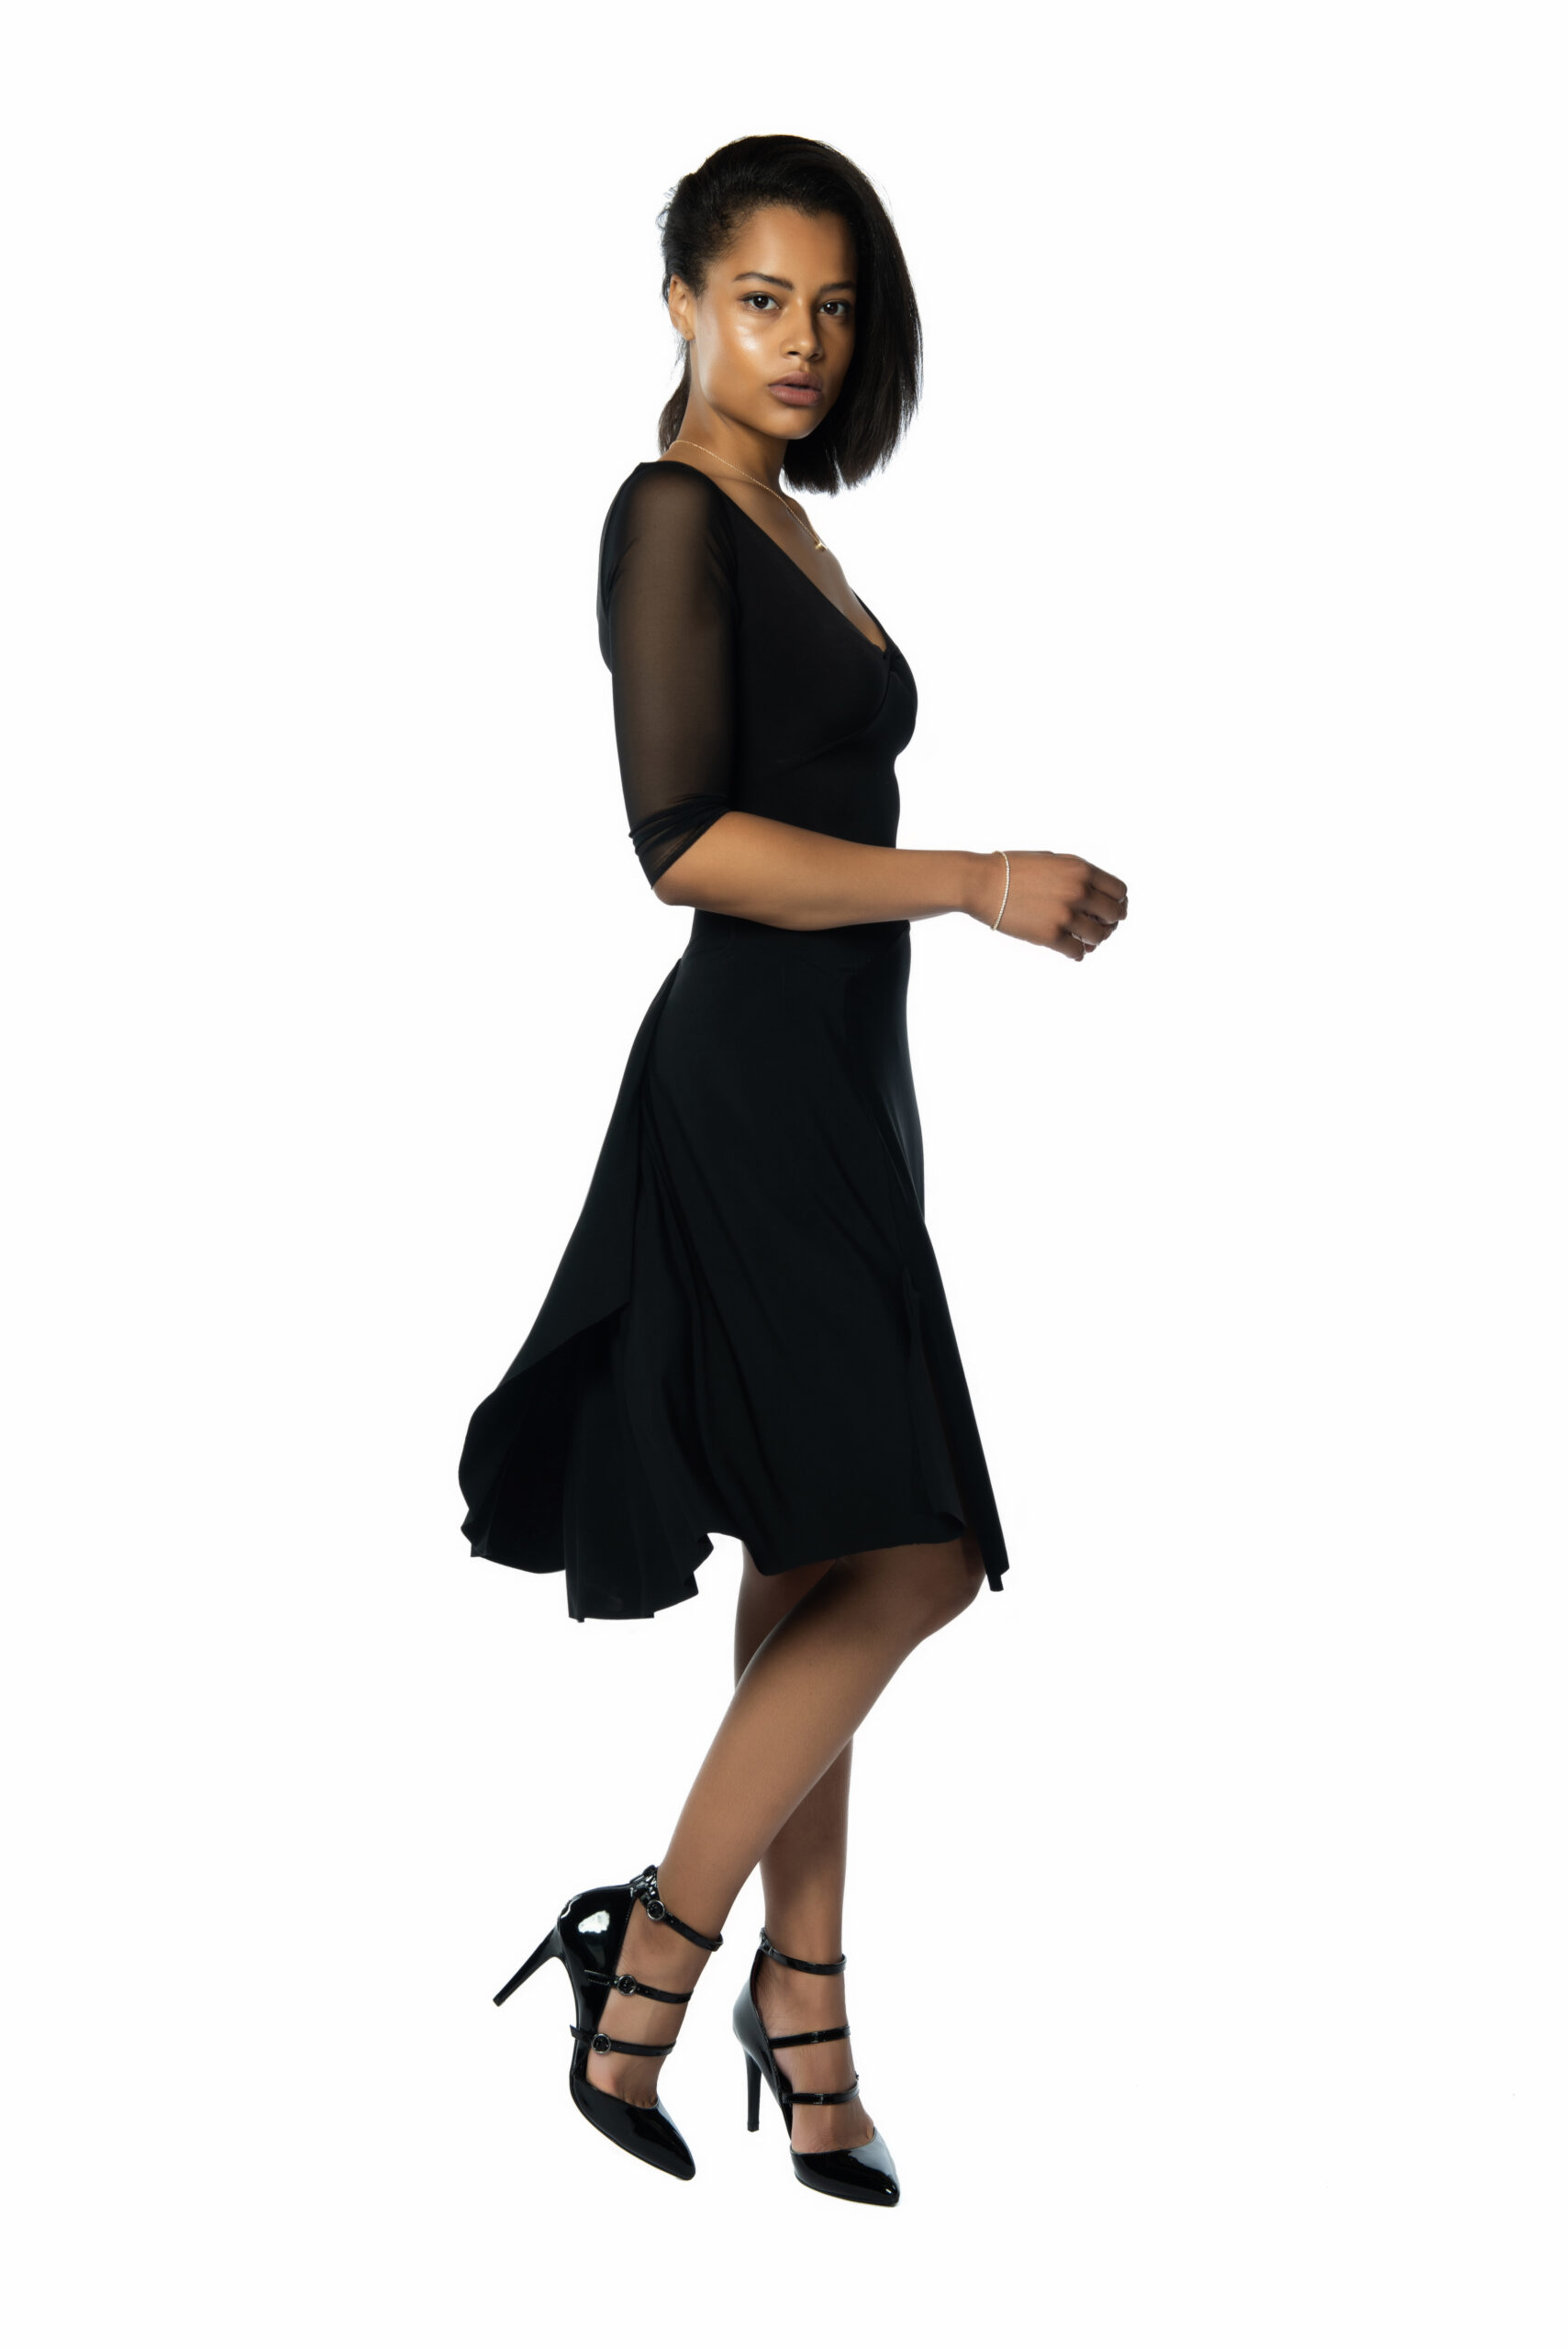 A Ferrari tango dress with tulle sleeves